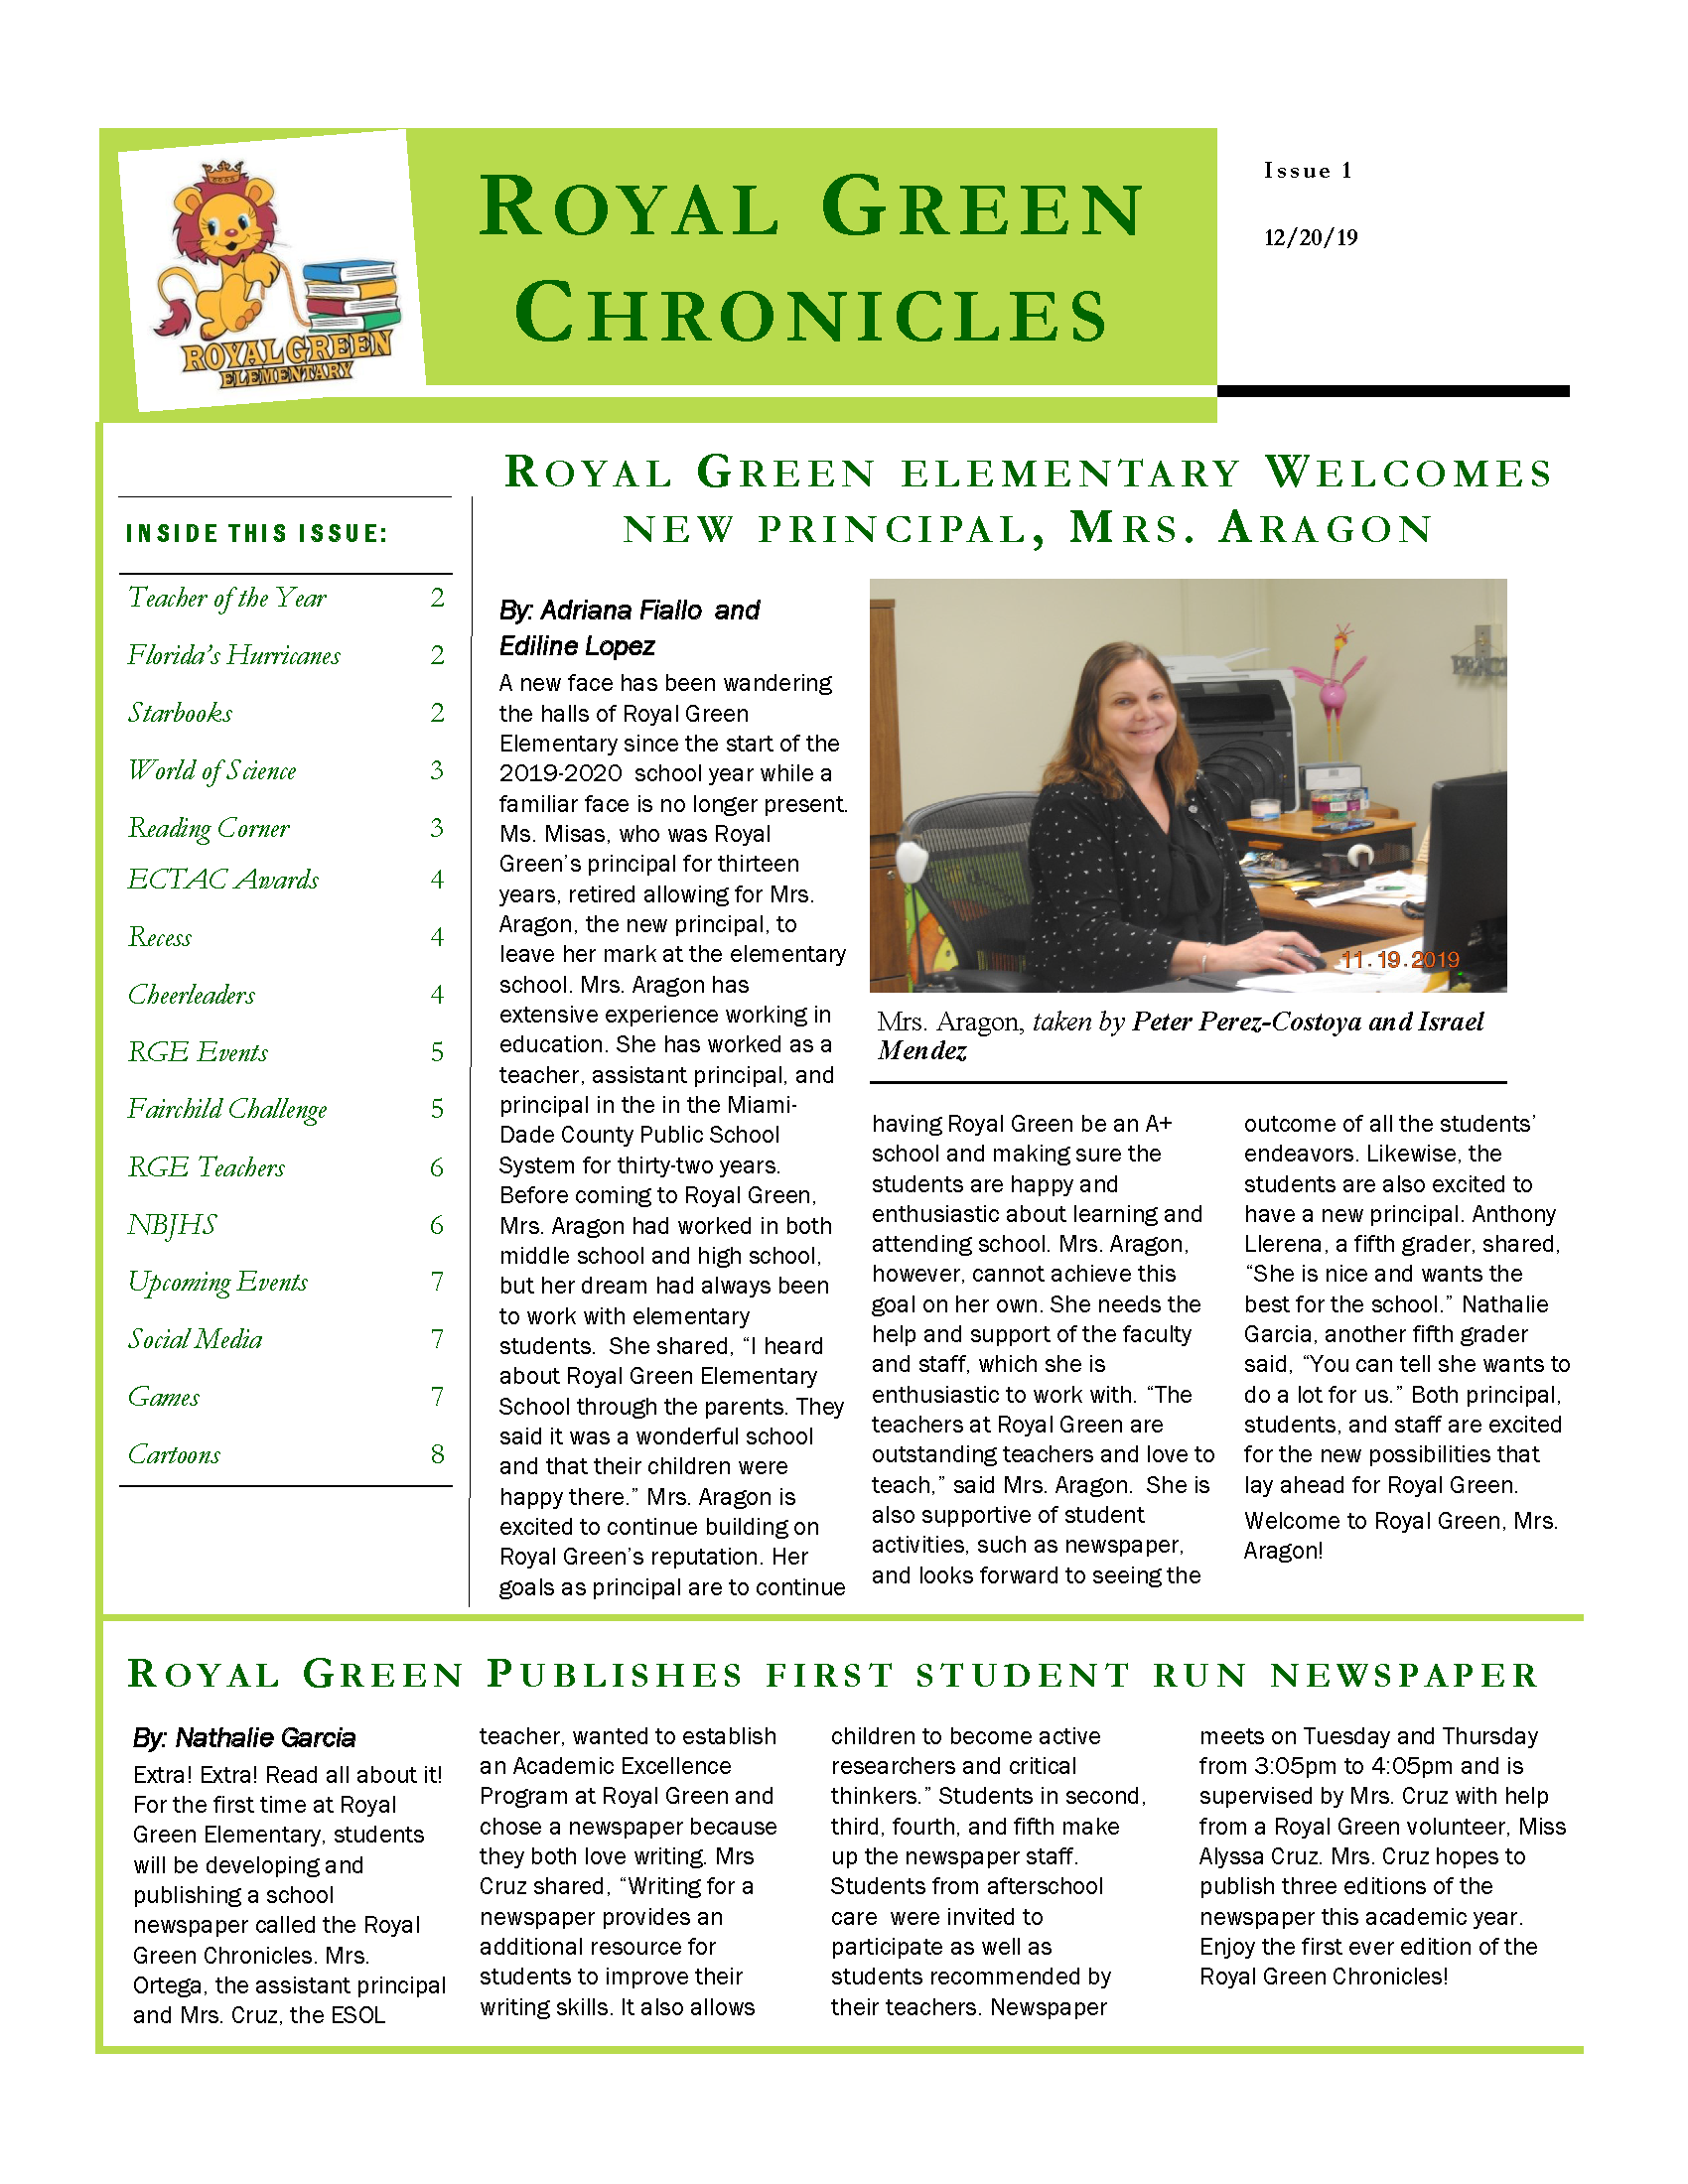 Chronicles Issue 1